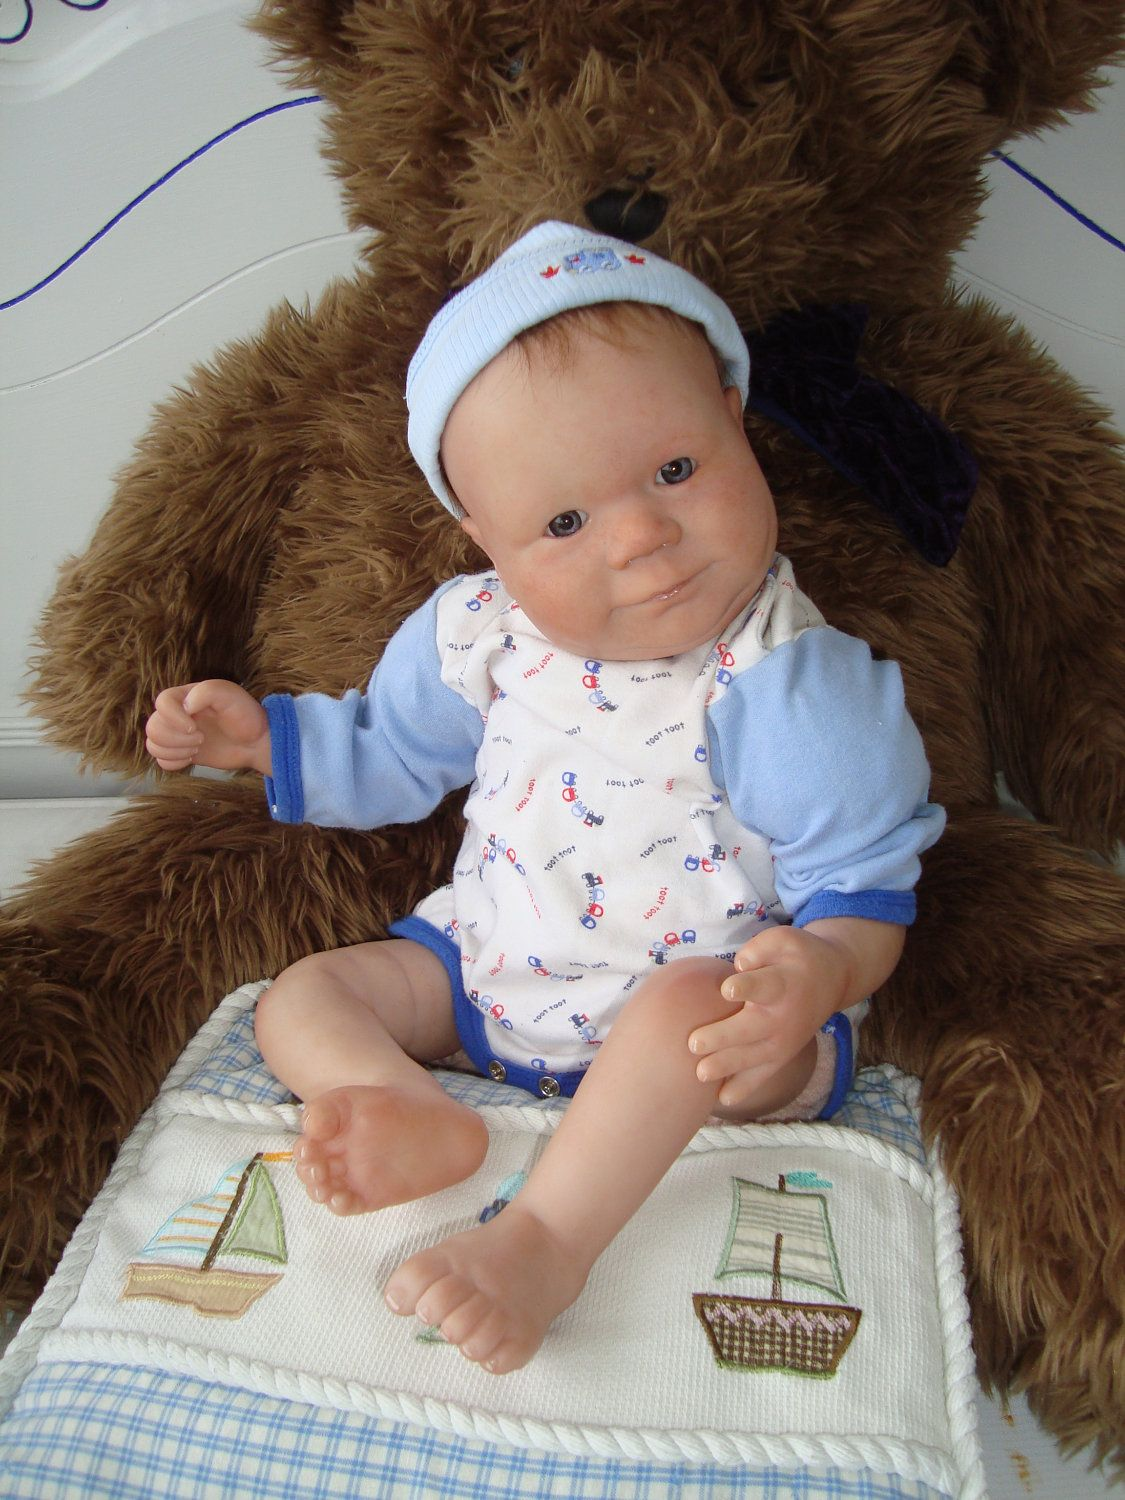 Reborn Baby Doll Christian Weighted girl or boy by tracywhaley08. $260.00 USD, via Etsy.